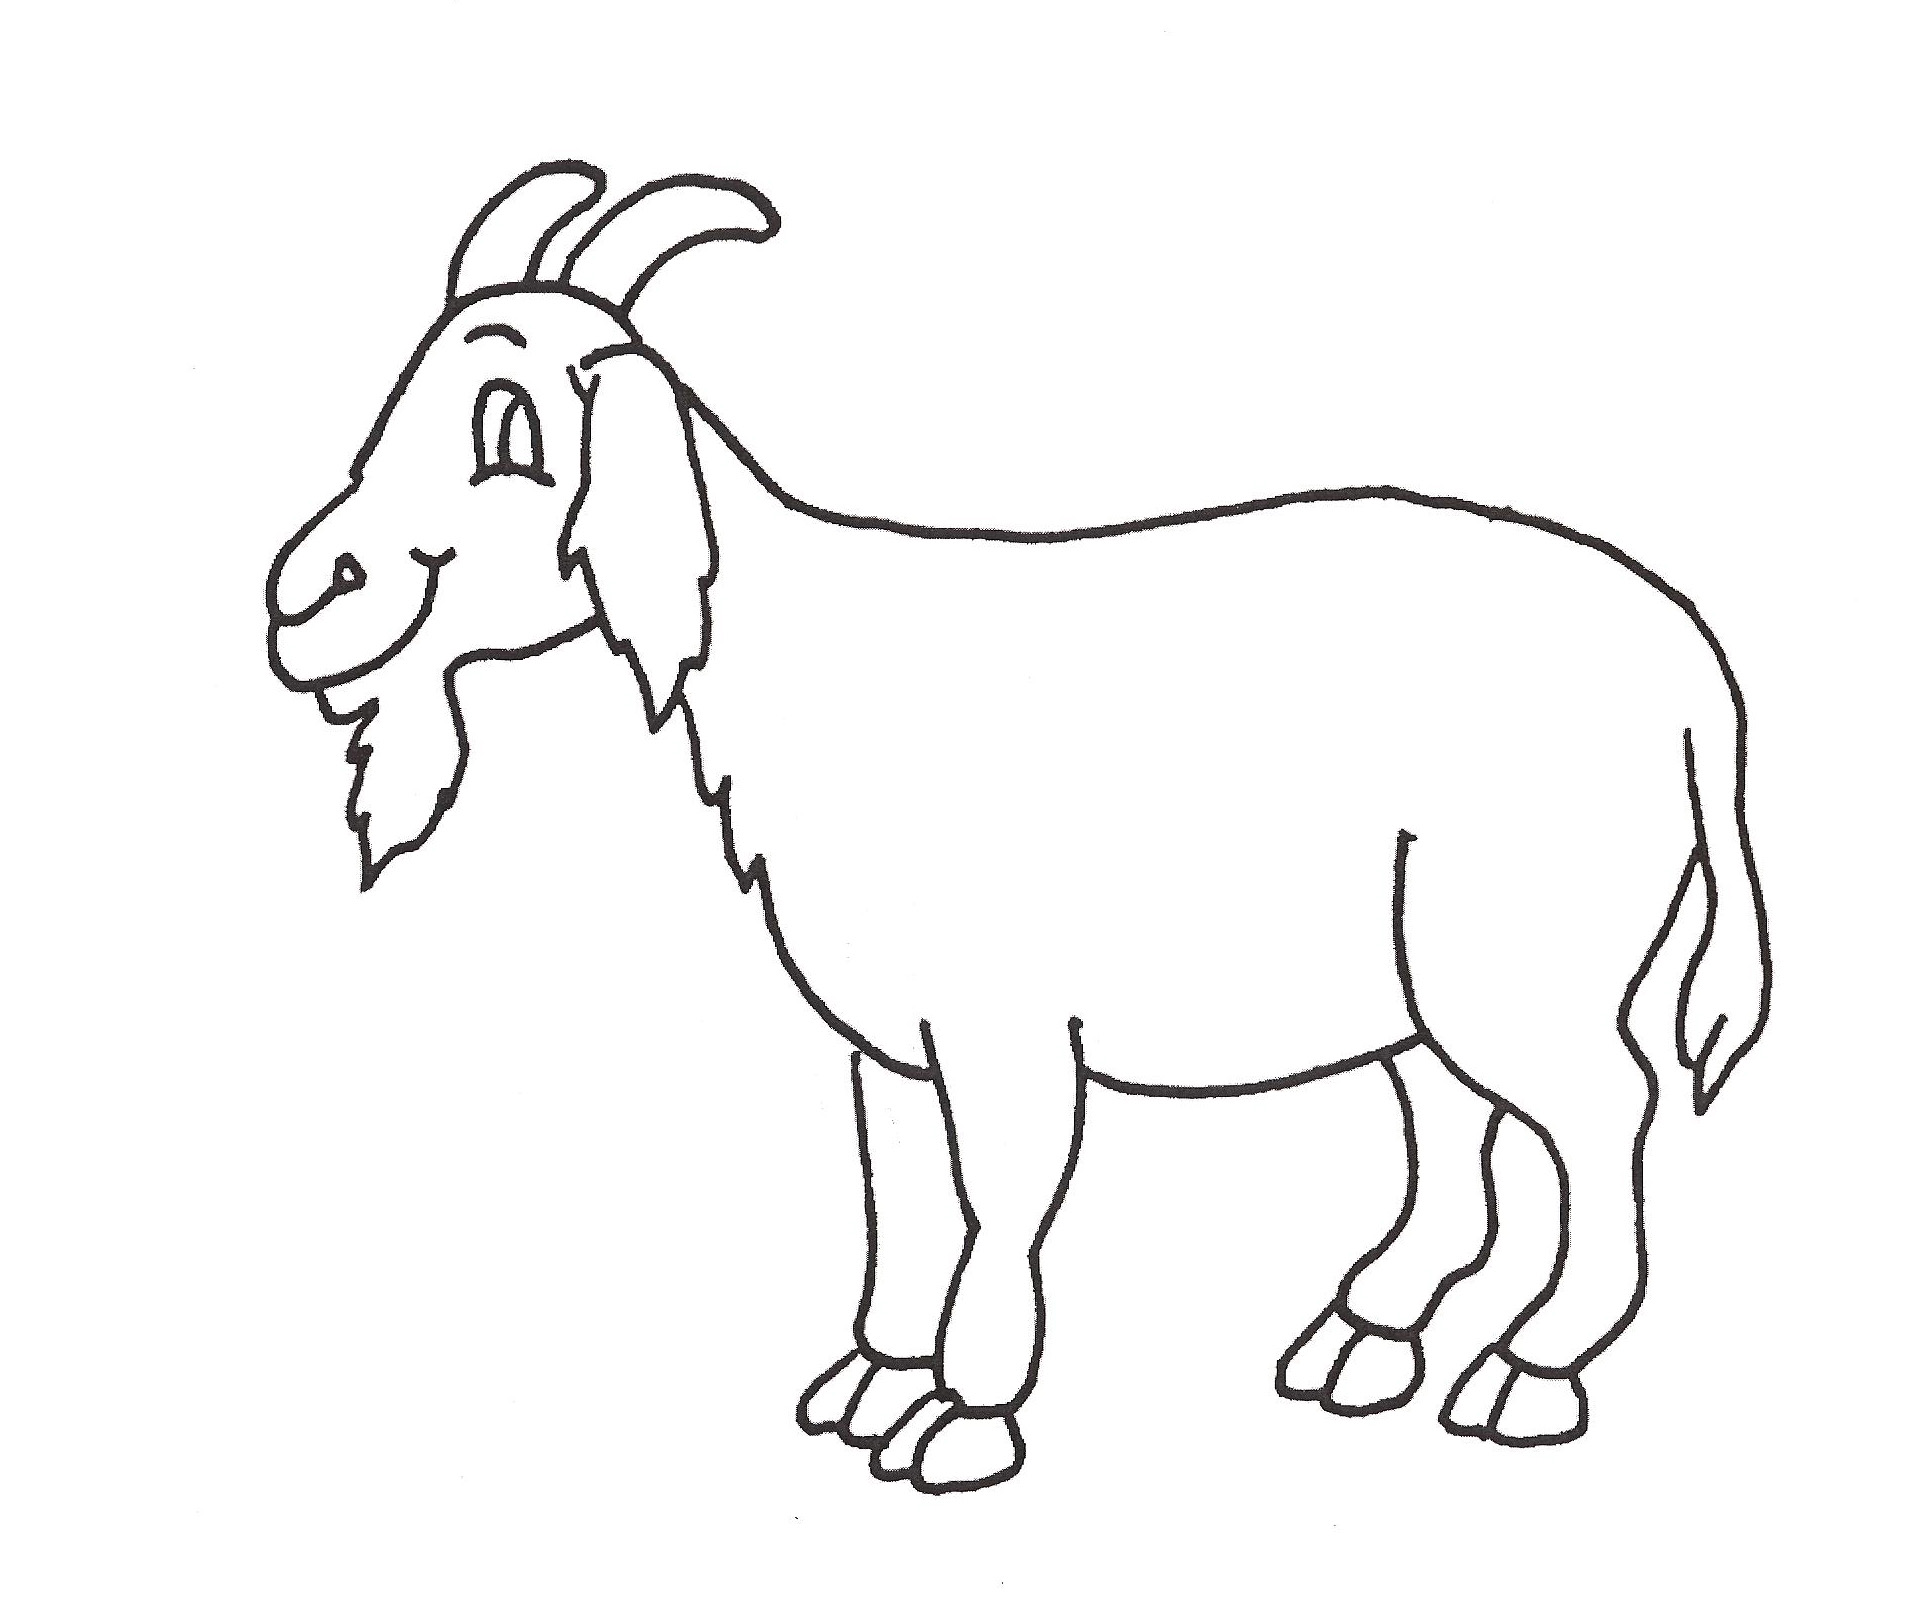 goat drawing pictures at getdrawings com free for baby face clip art free images cute baby face clipart